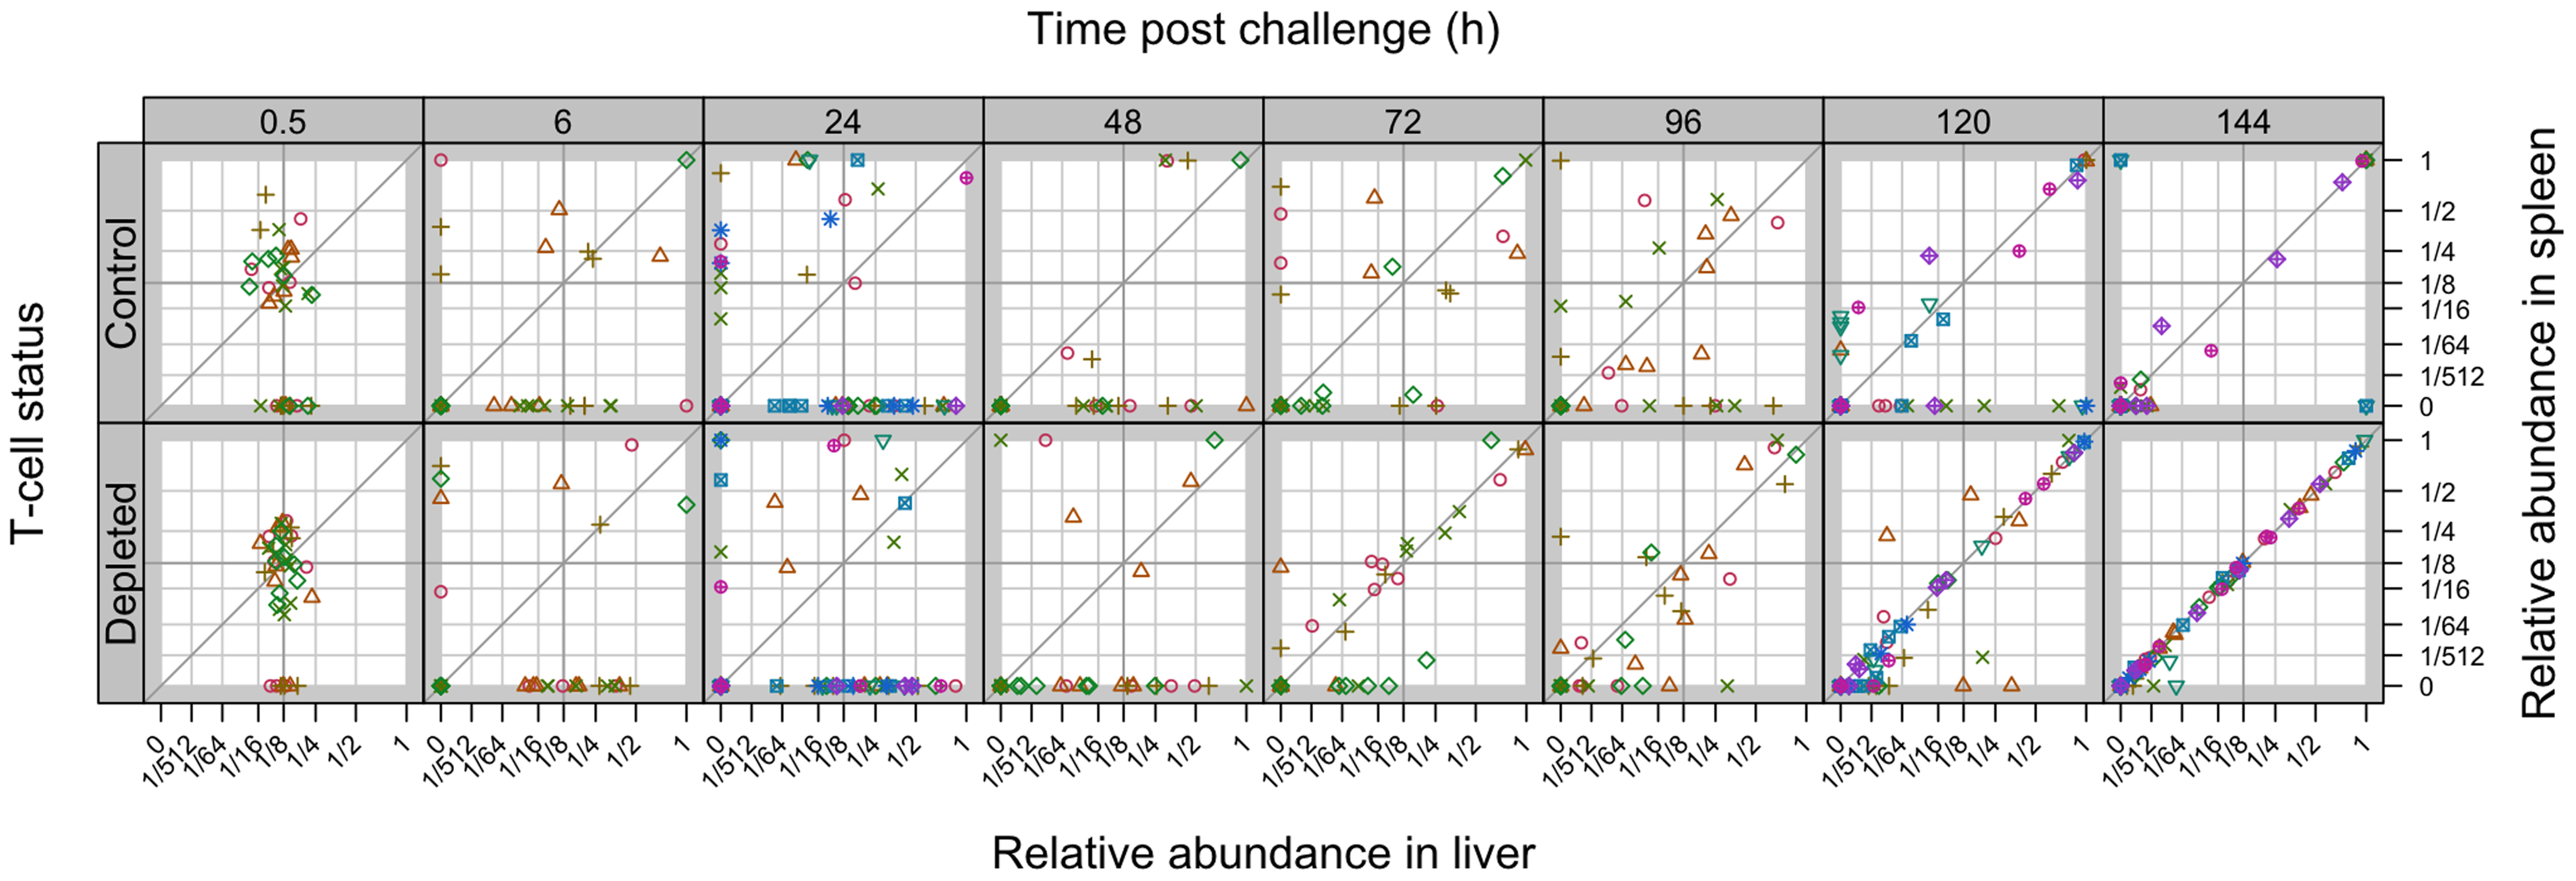 Relative abundance of individual WITS in the spleens and livers.